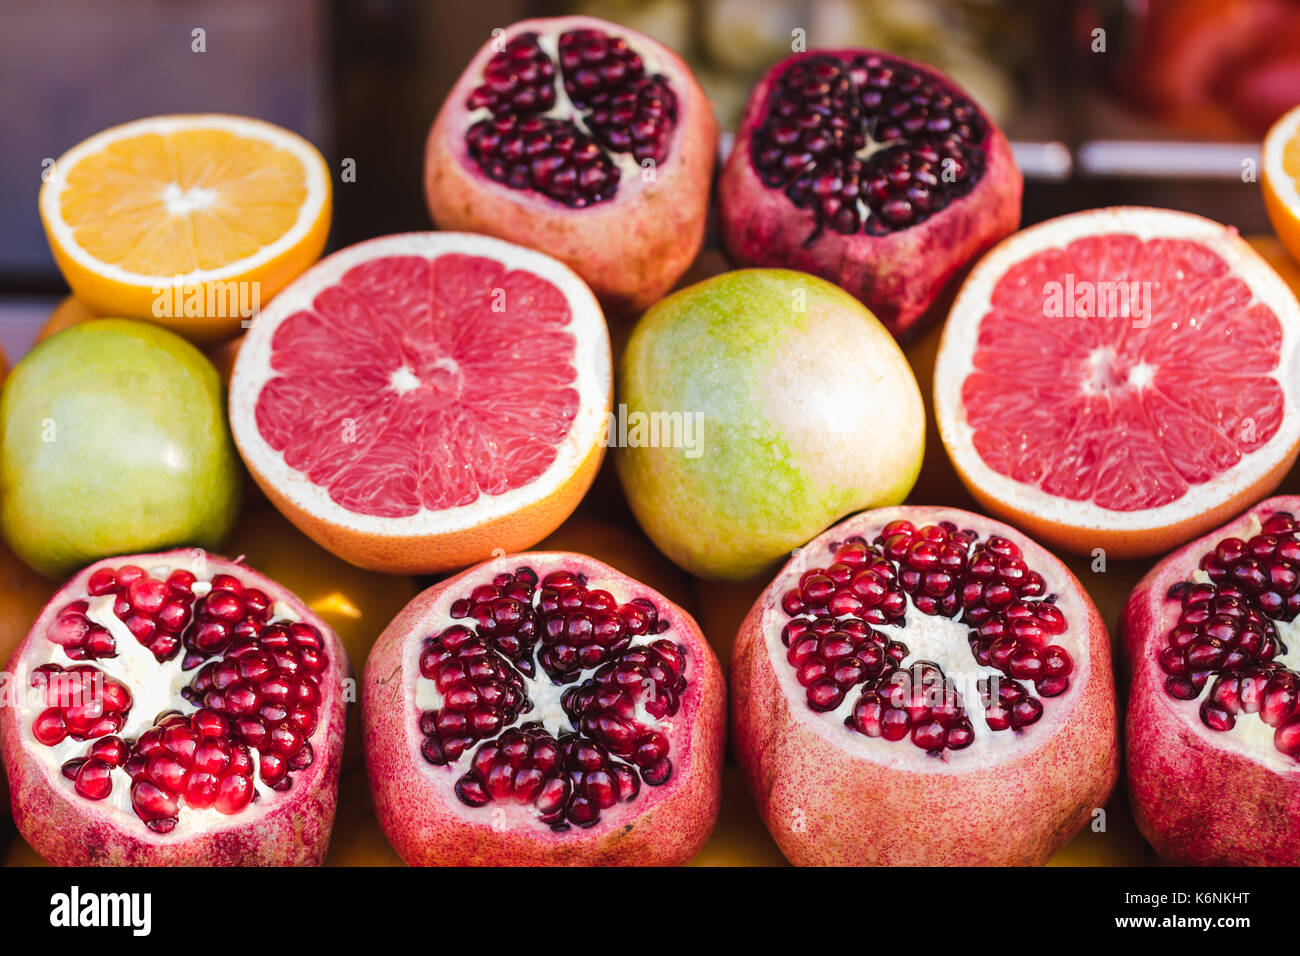 Mix tropic citrus fruits background.Fresh fruits close up.Healthy eating, dieting concept, clean eating. Making - Stock Image